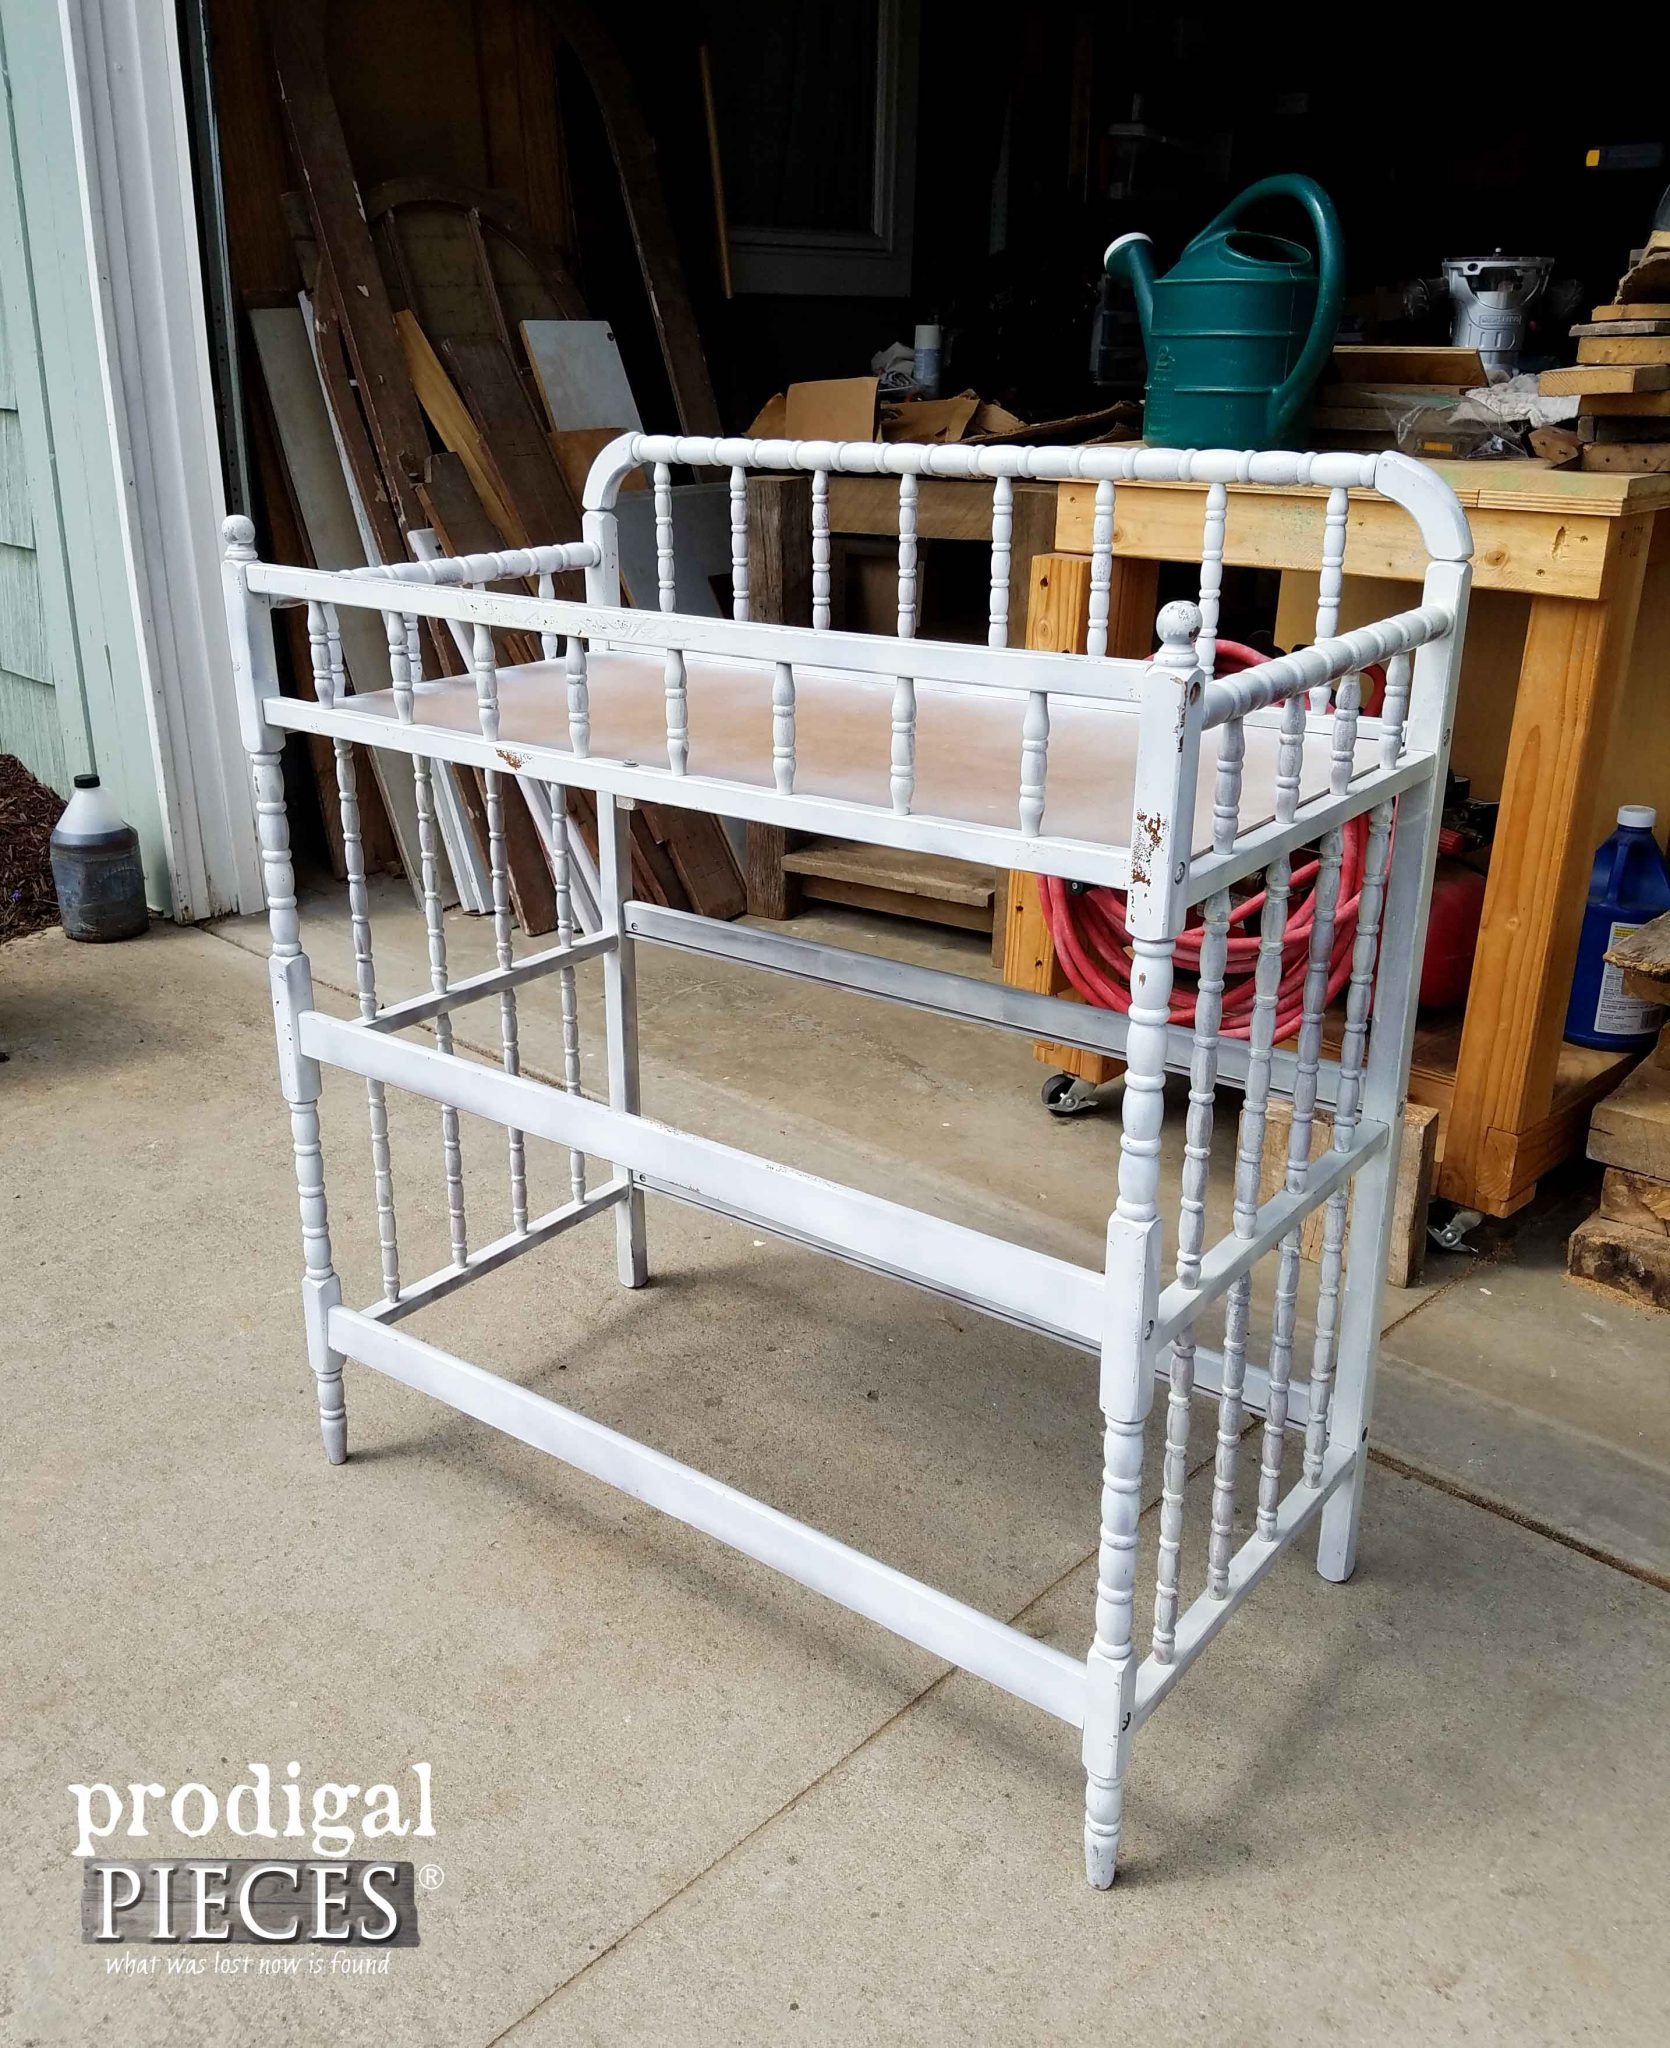 Curbside Changing Table Before Makeover | Prodigal Pieces | prodigalpieces.com